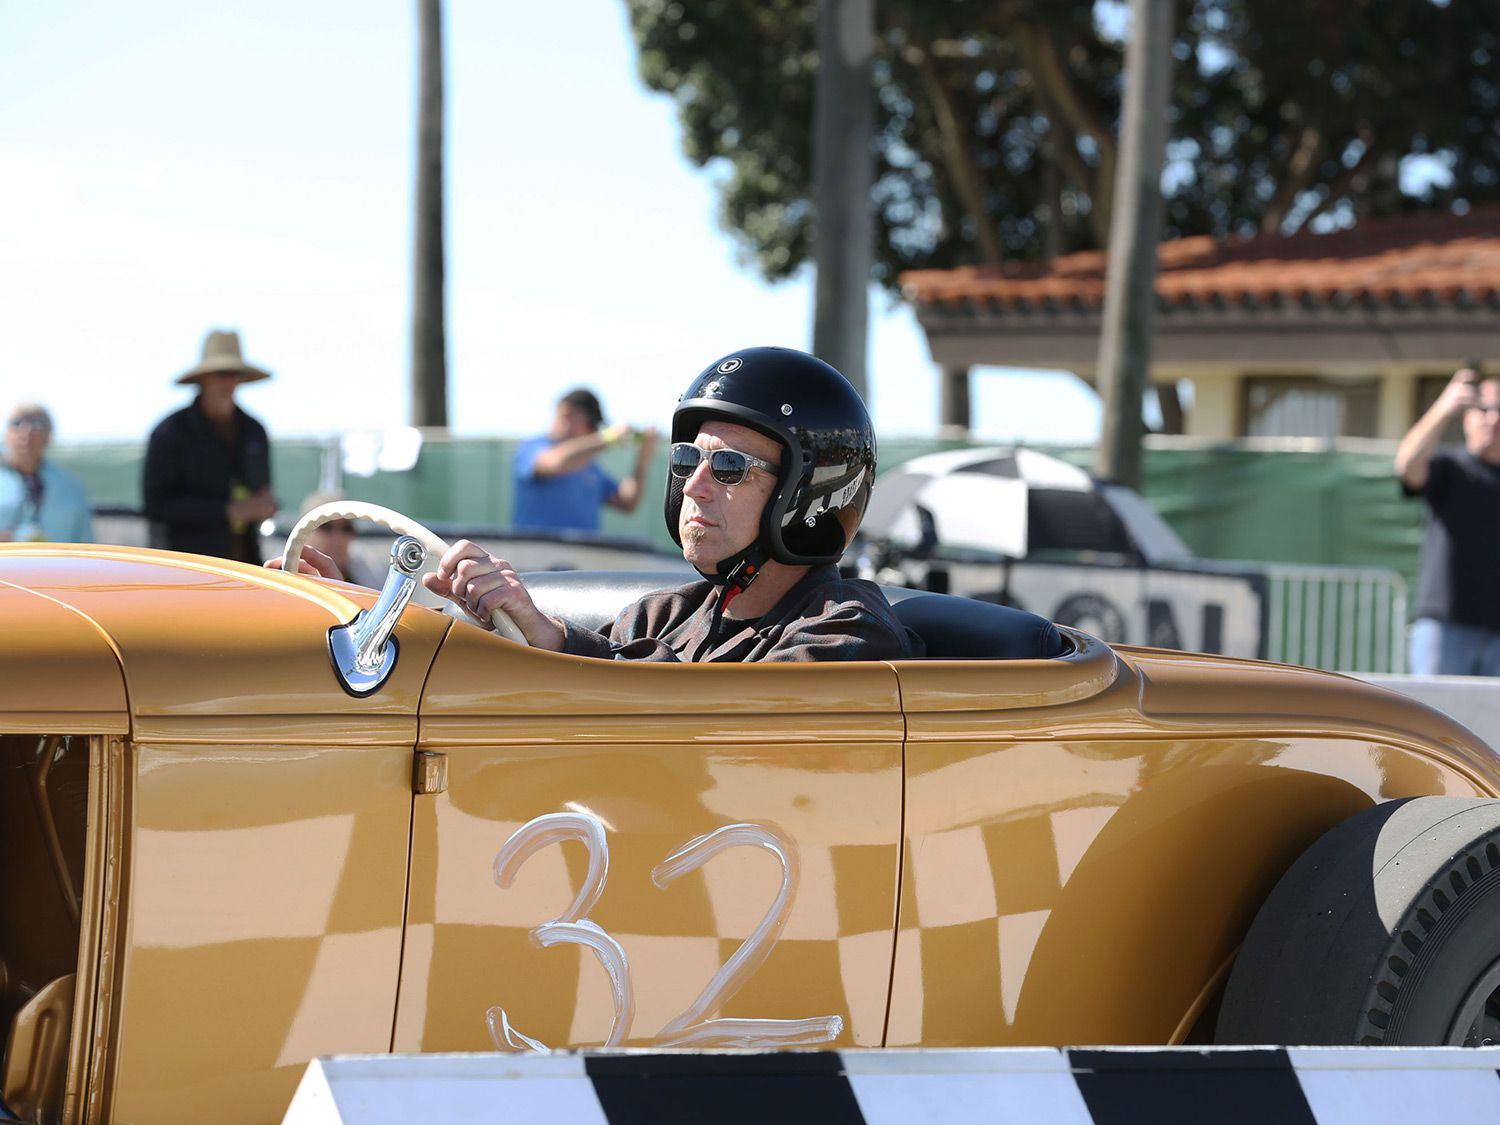 Tom Branch about to race his Roadster down the strip.